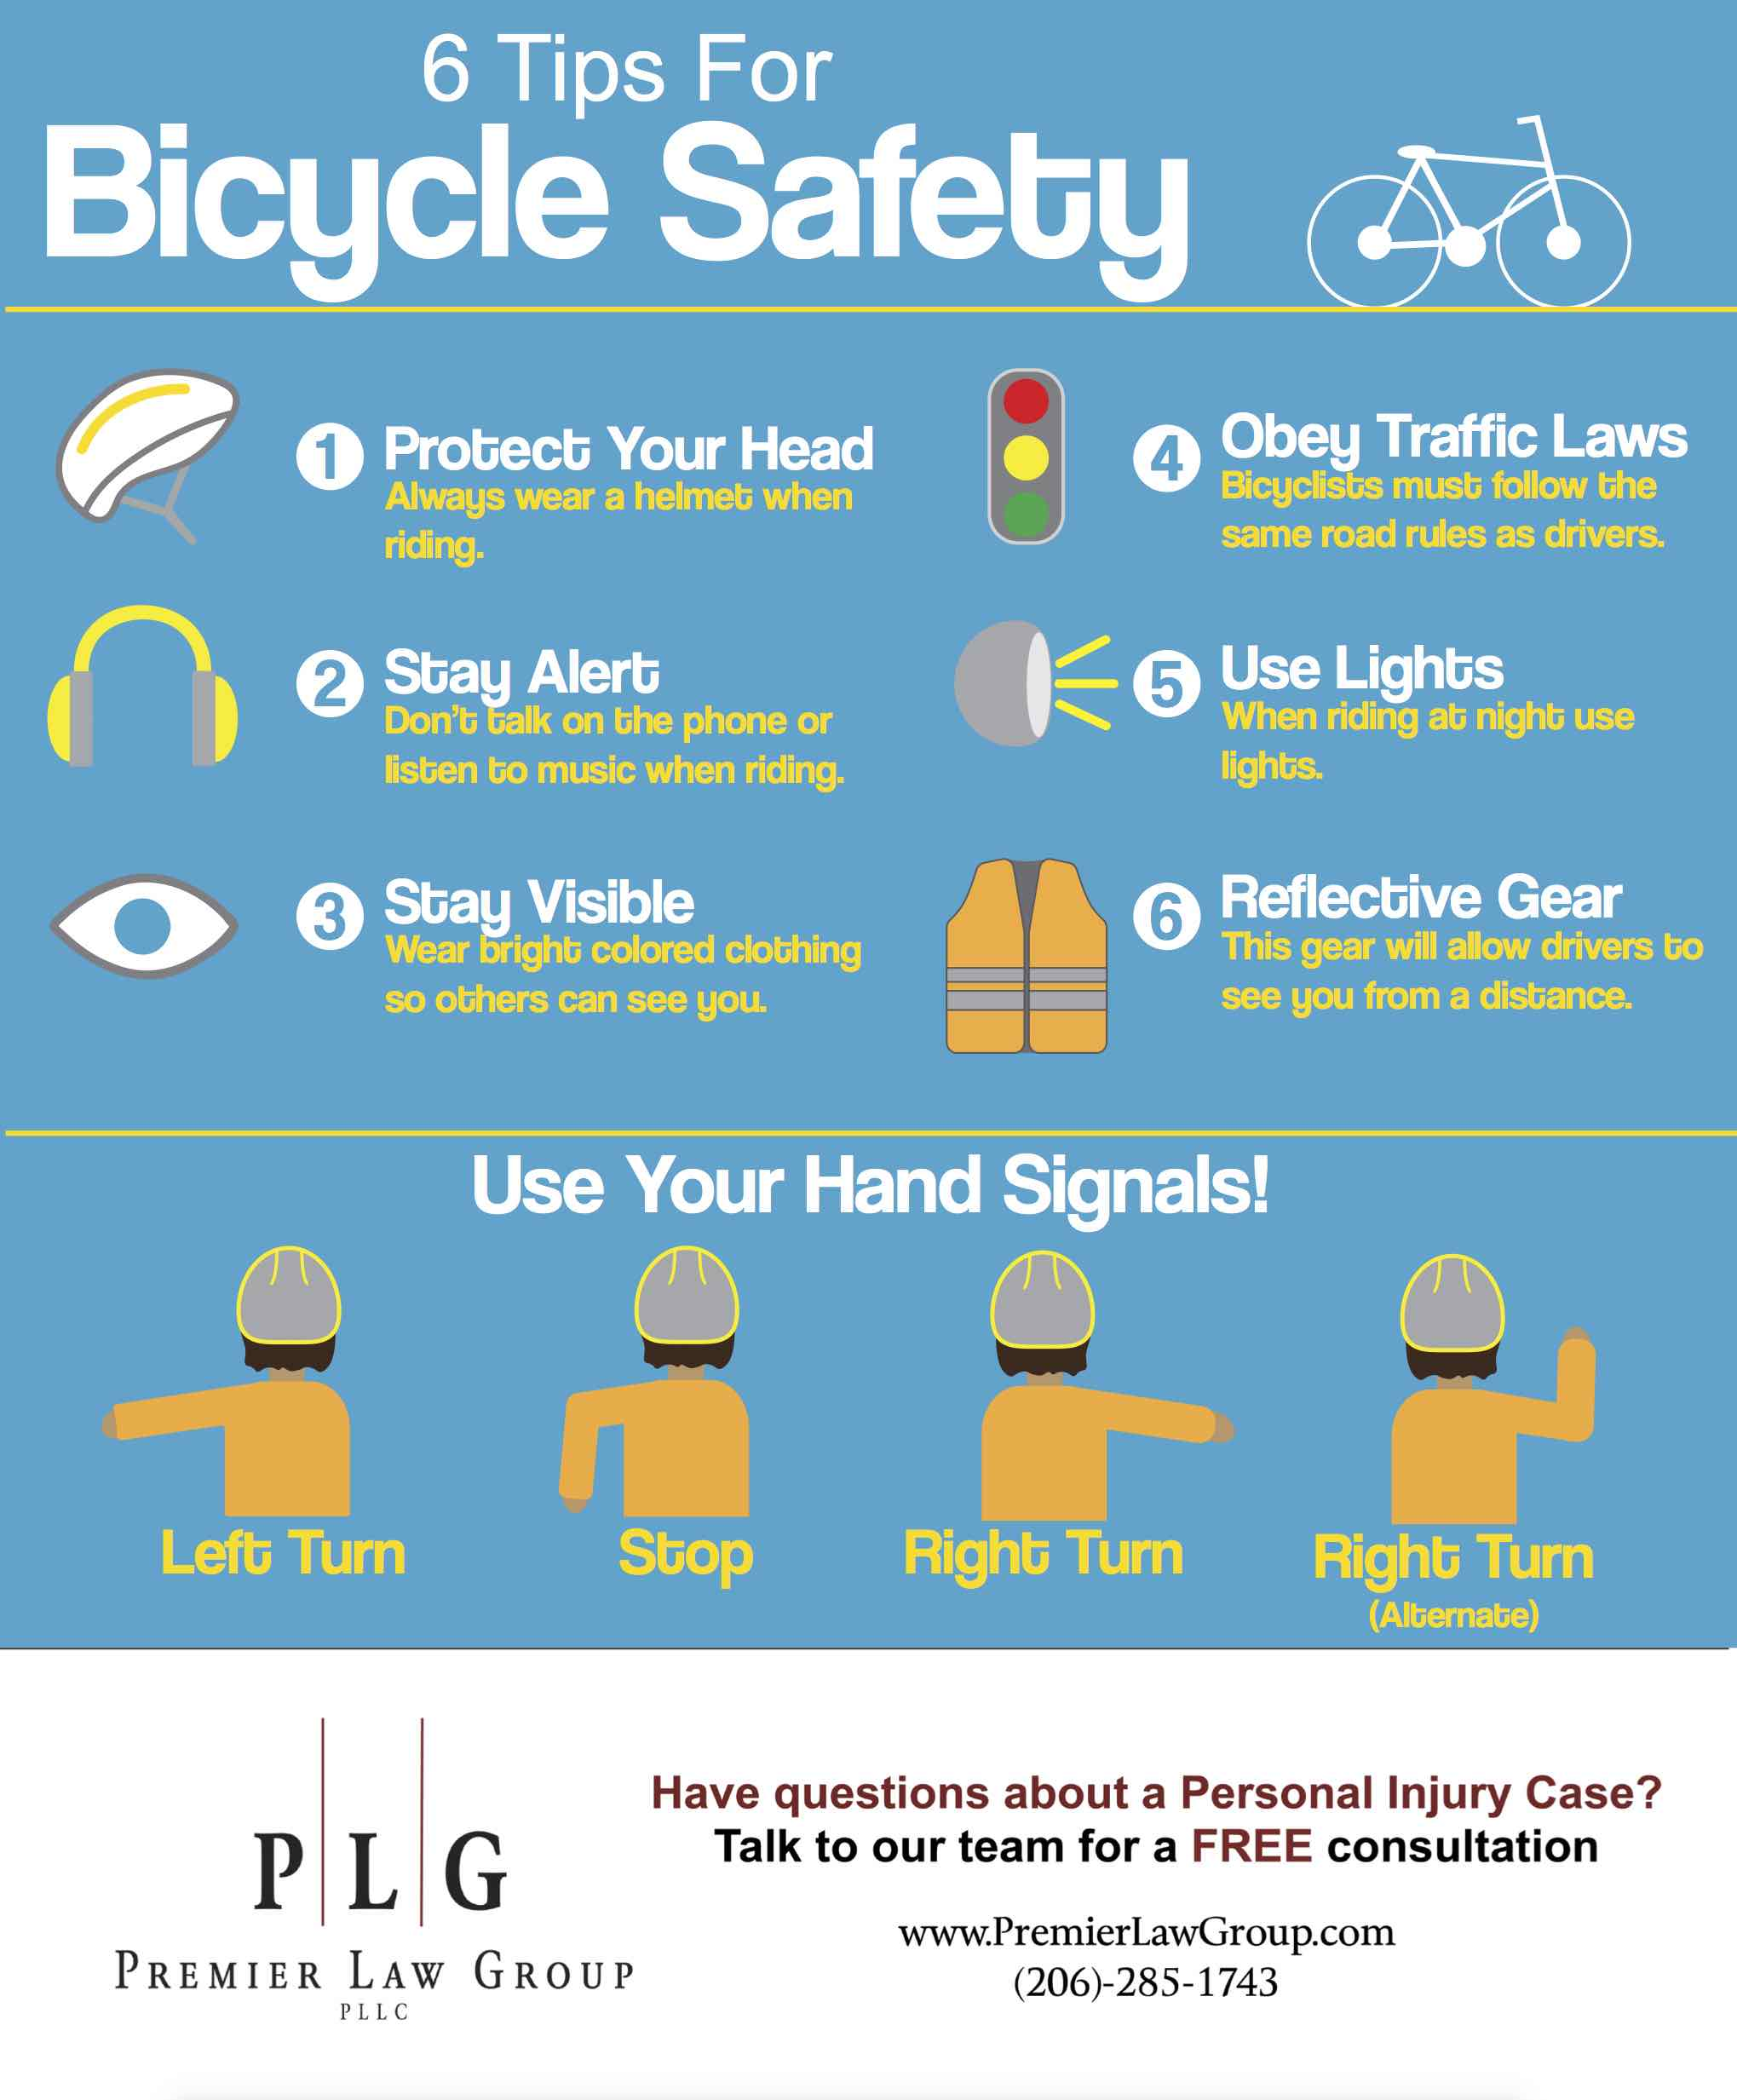 6 Tips For Bicycle Safety